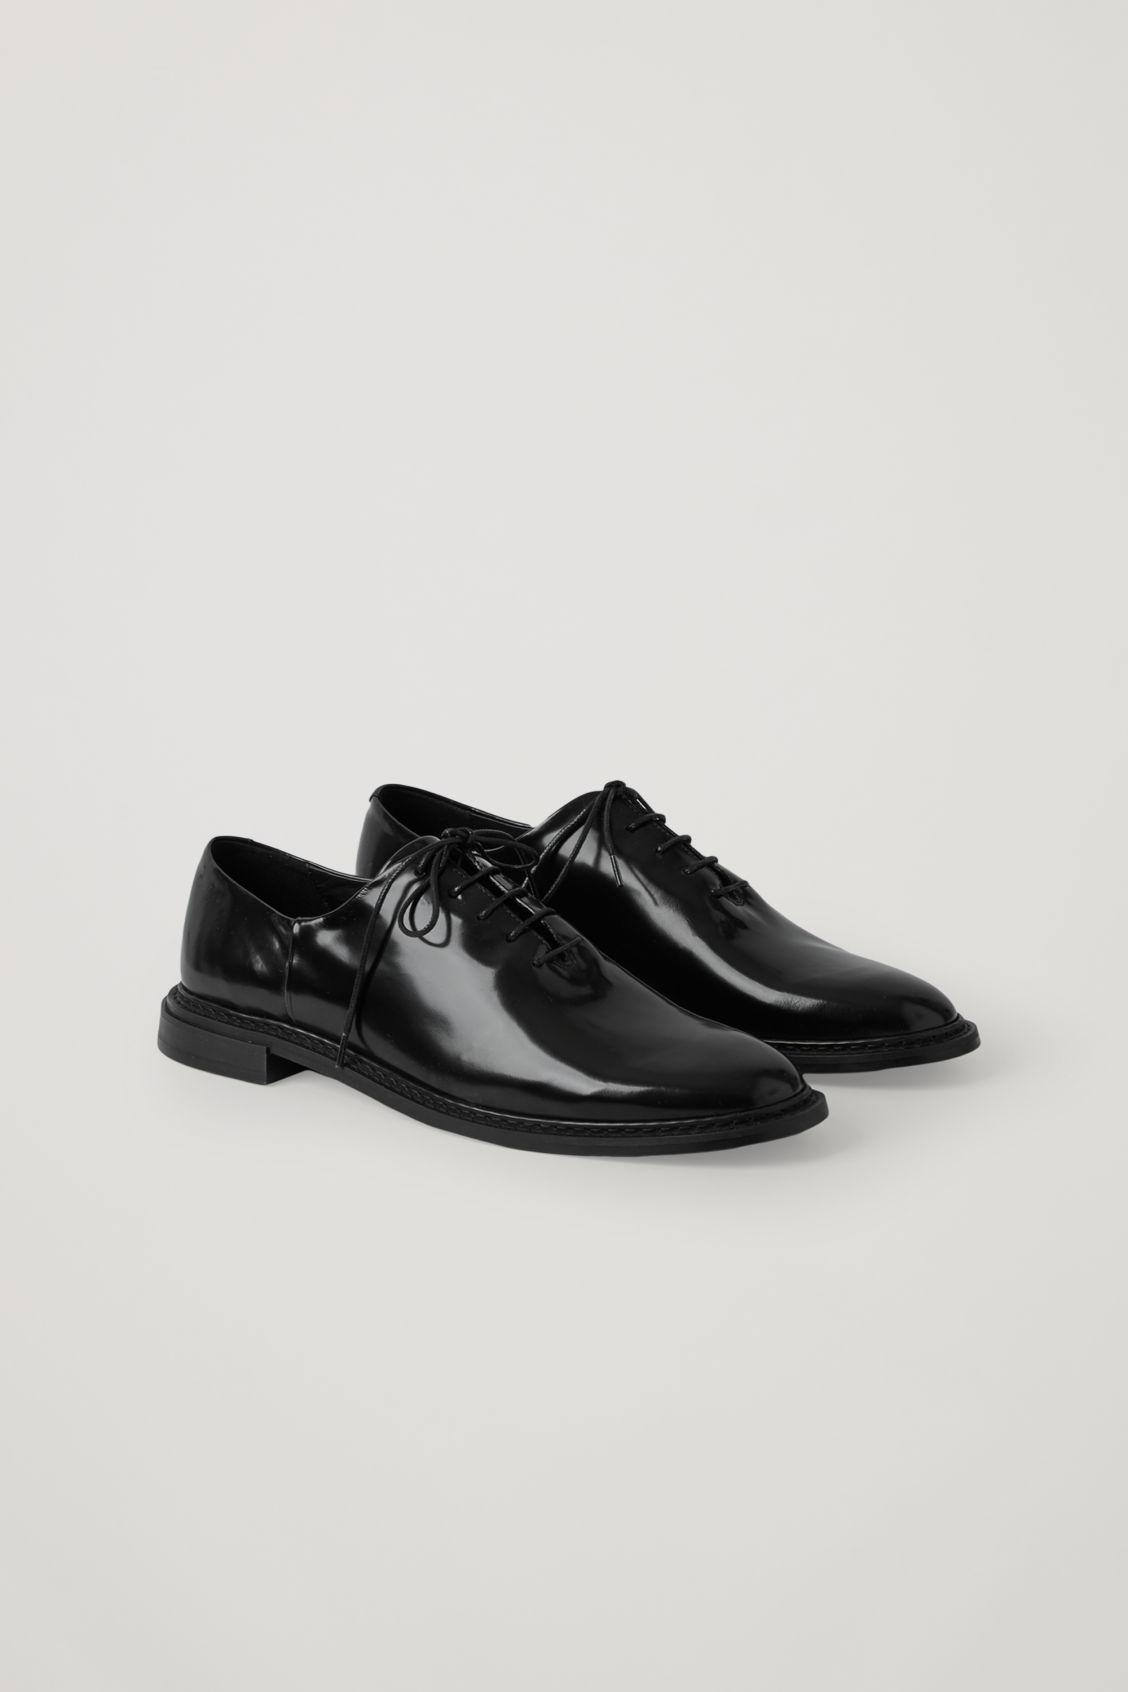 PATENT LEATHER LACE-UP BROGUES